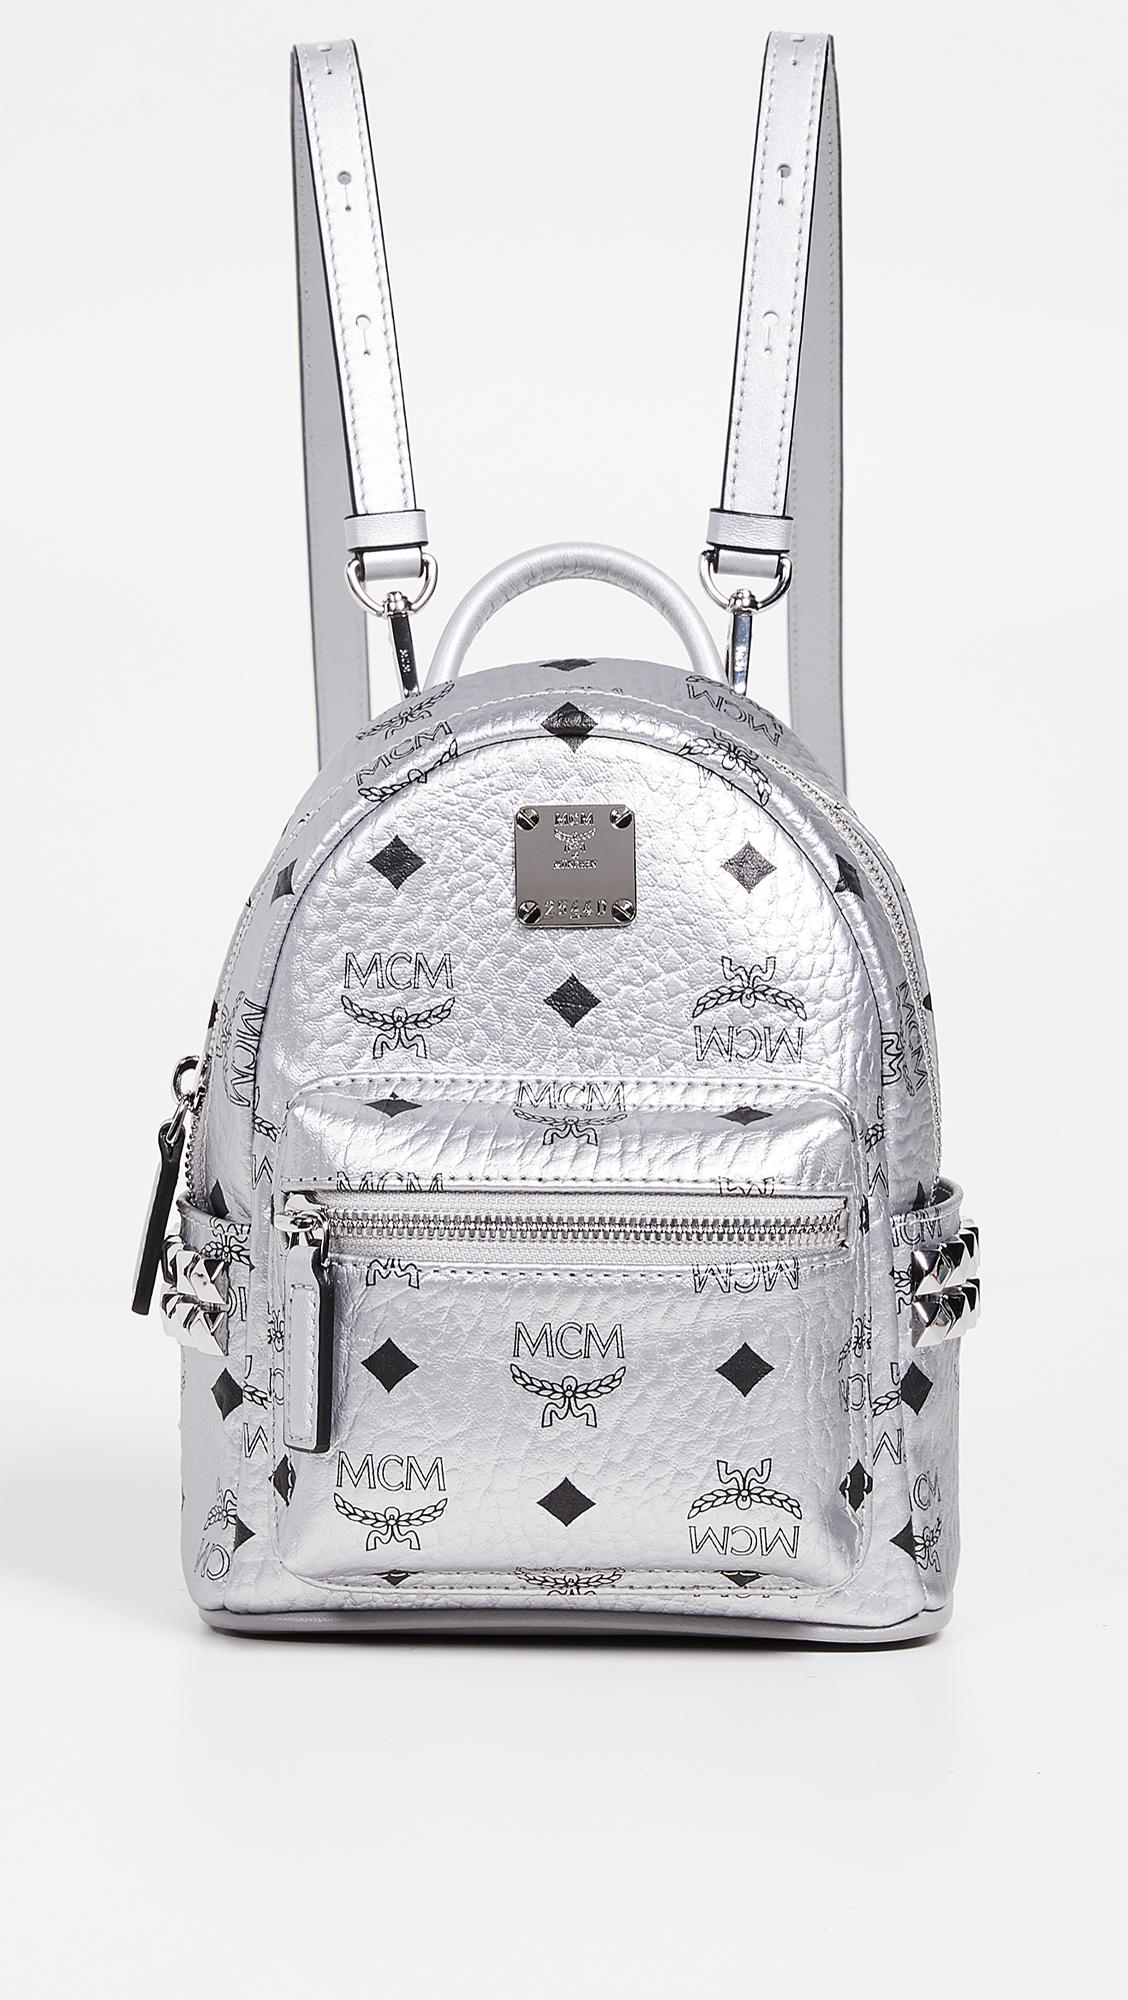 Mcm Mini Backpack Shopbop - Swiss Paralympic